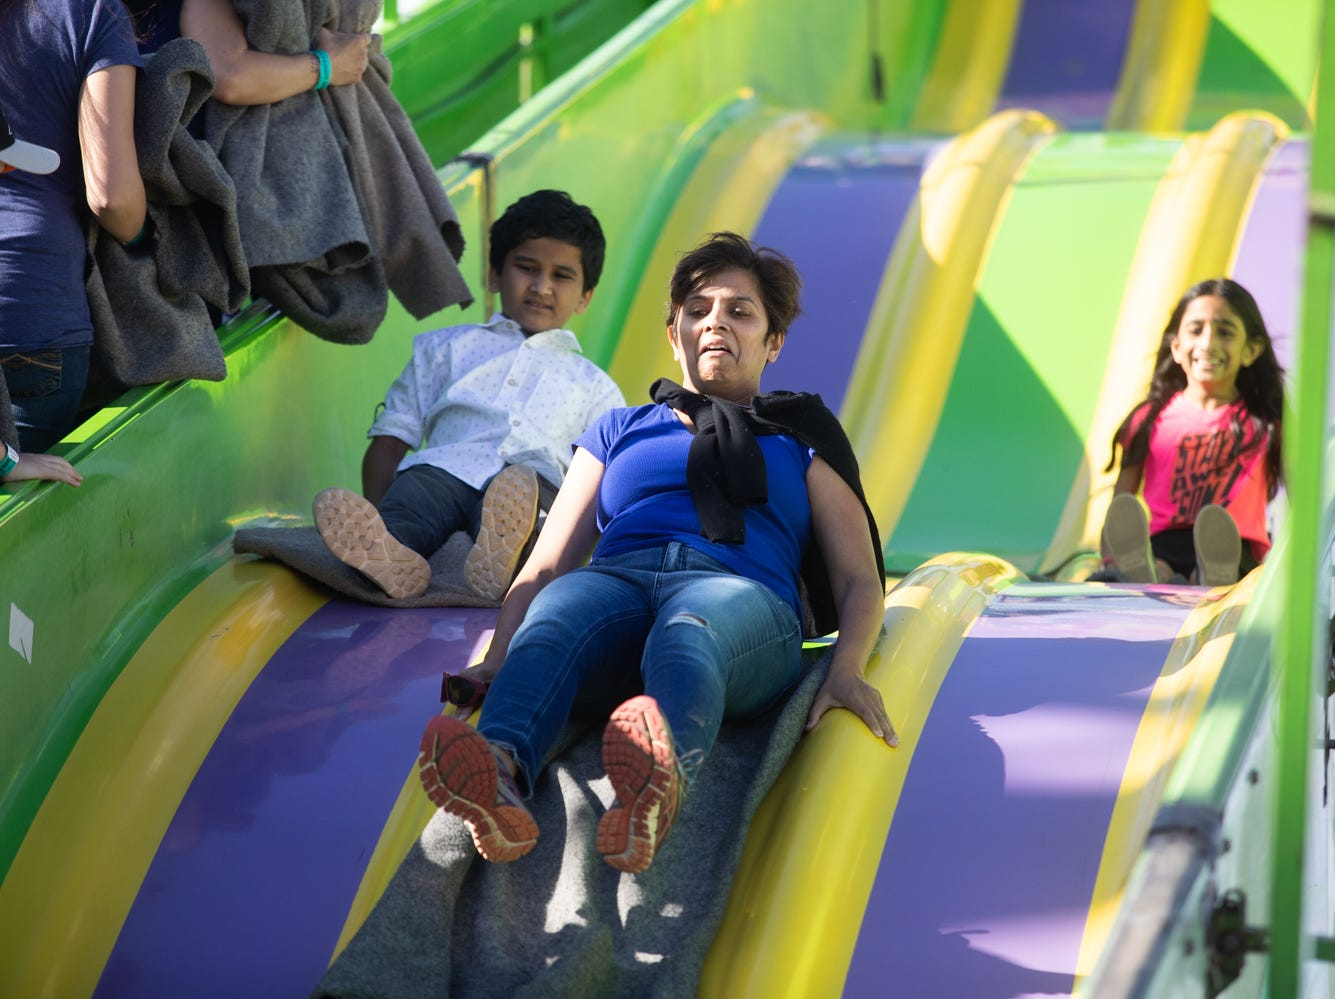 The super slide was a popular attraction at the Chandler Ostrich Festival on Sunday, March. 10, 2019.